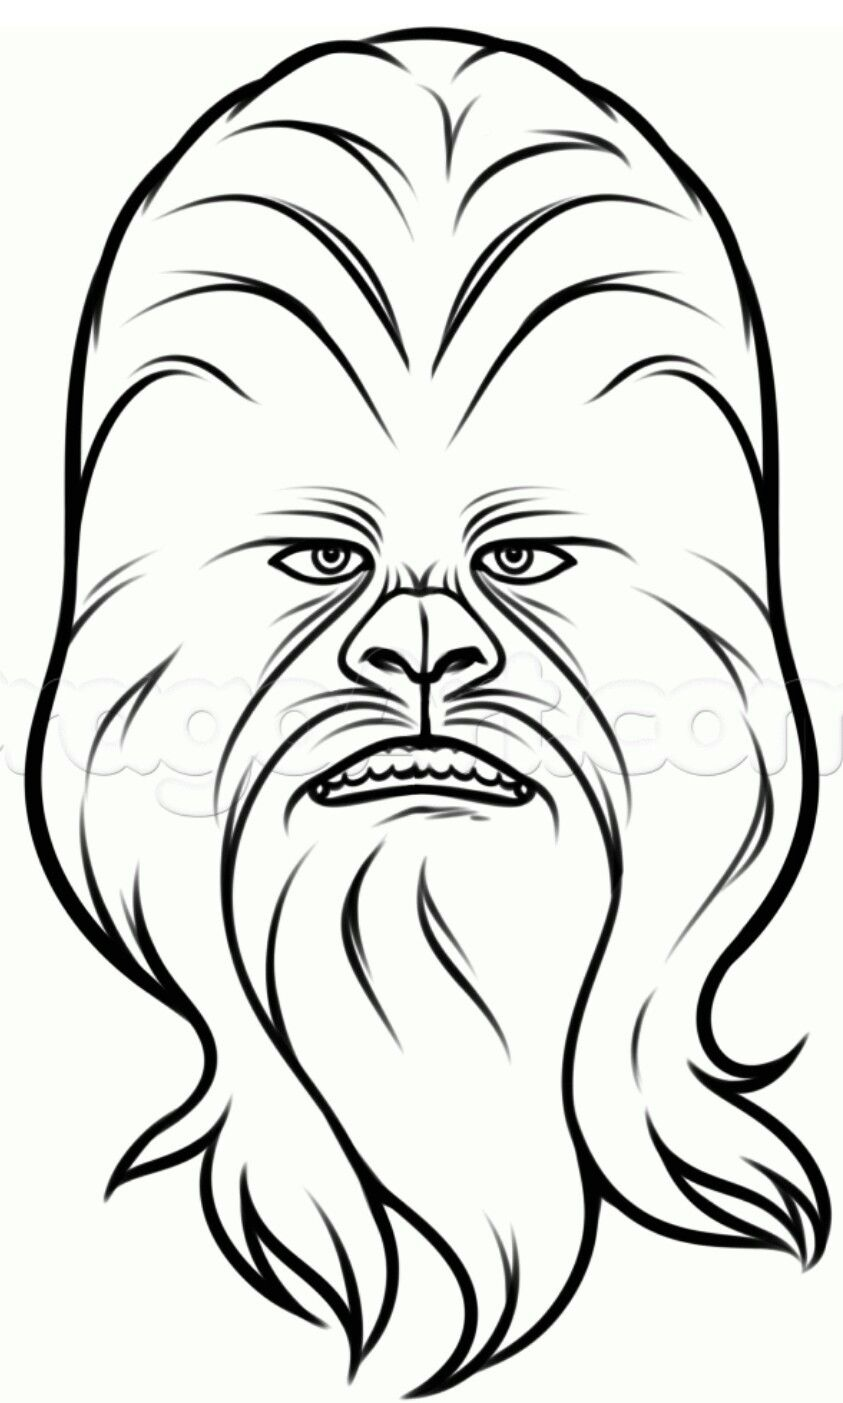 Chewbacca Head Outline Wiring Diagrams Transmission Diagram Parts List For Model La112 Maytagparts Washer Related Images